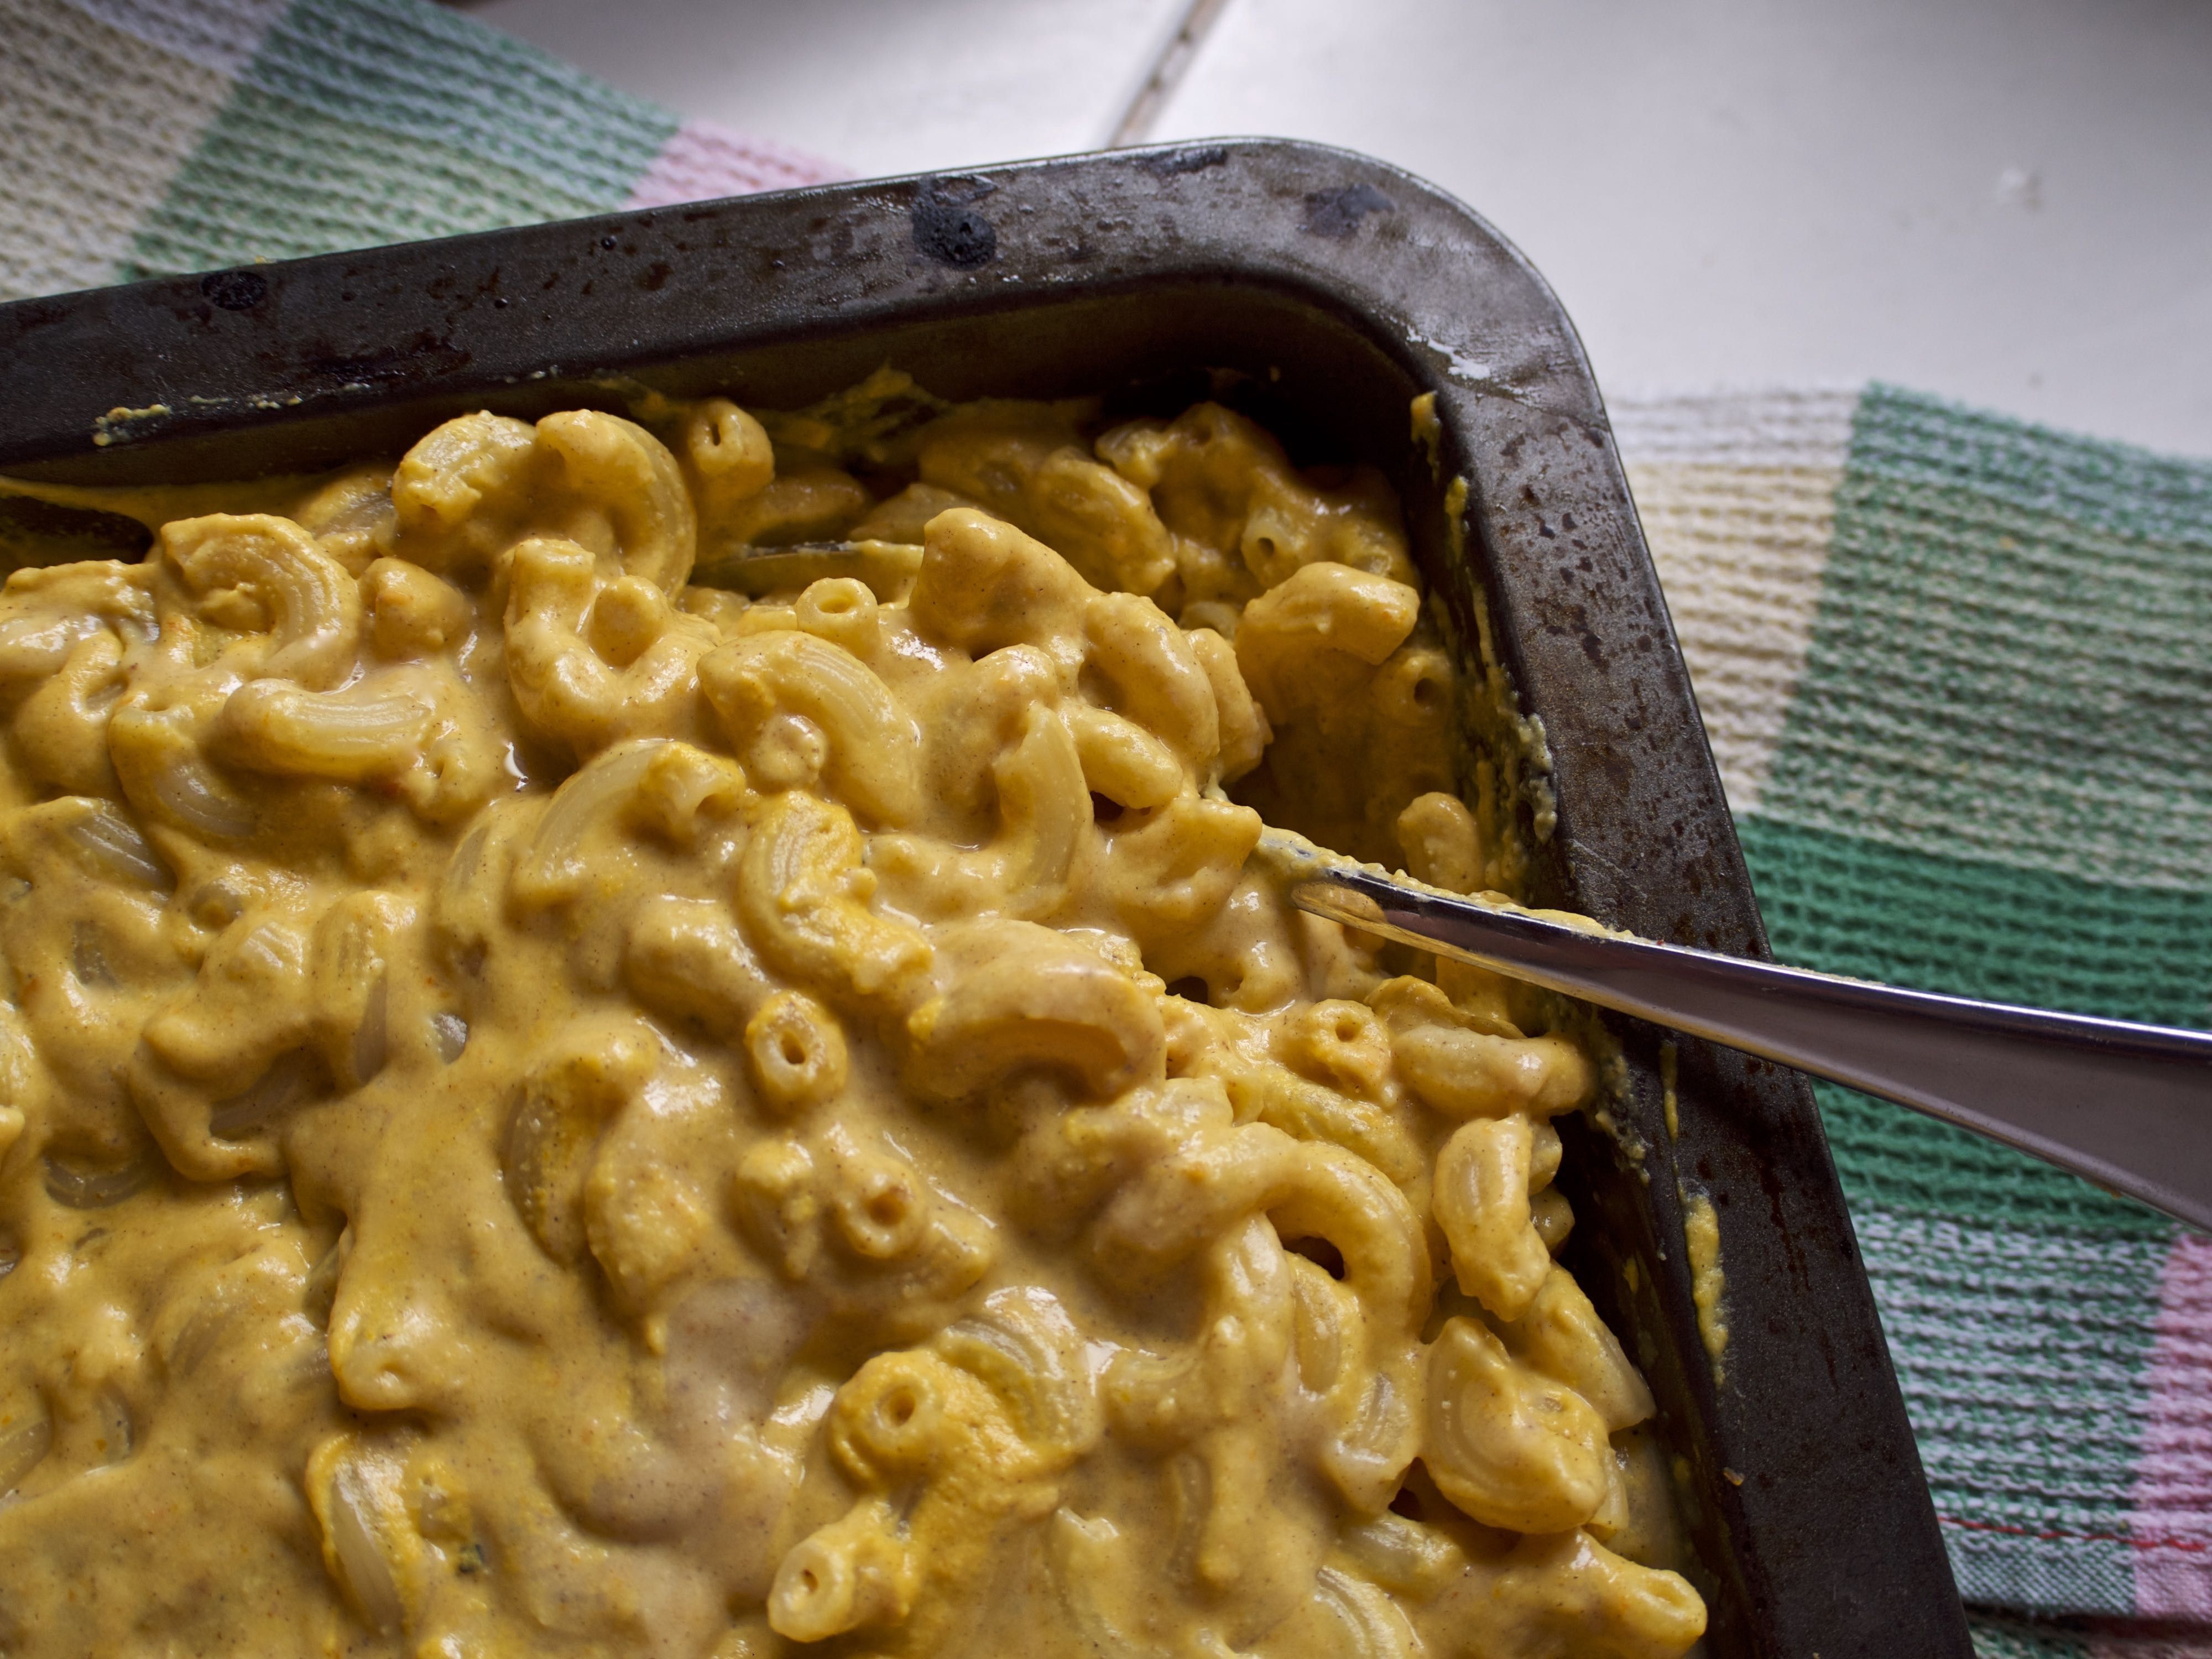 Mac And Cheese For Chrissy Teigen Mac And Cheese Vegan Mac And Cheese How To Cook Pasta